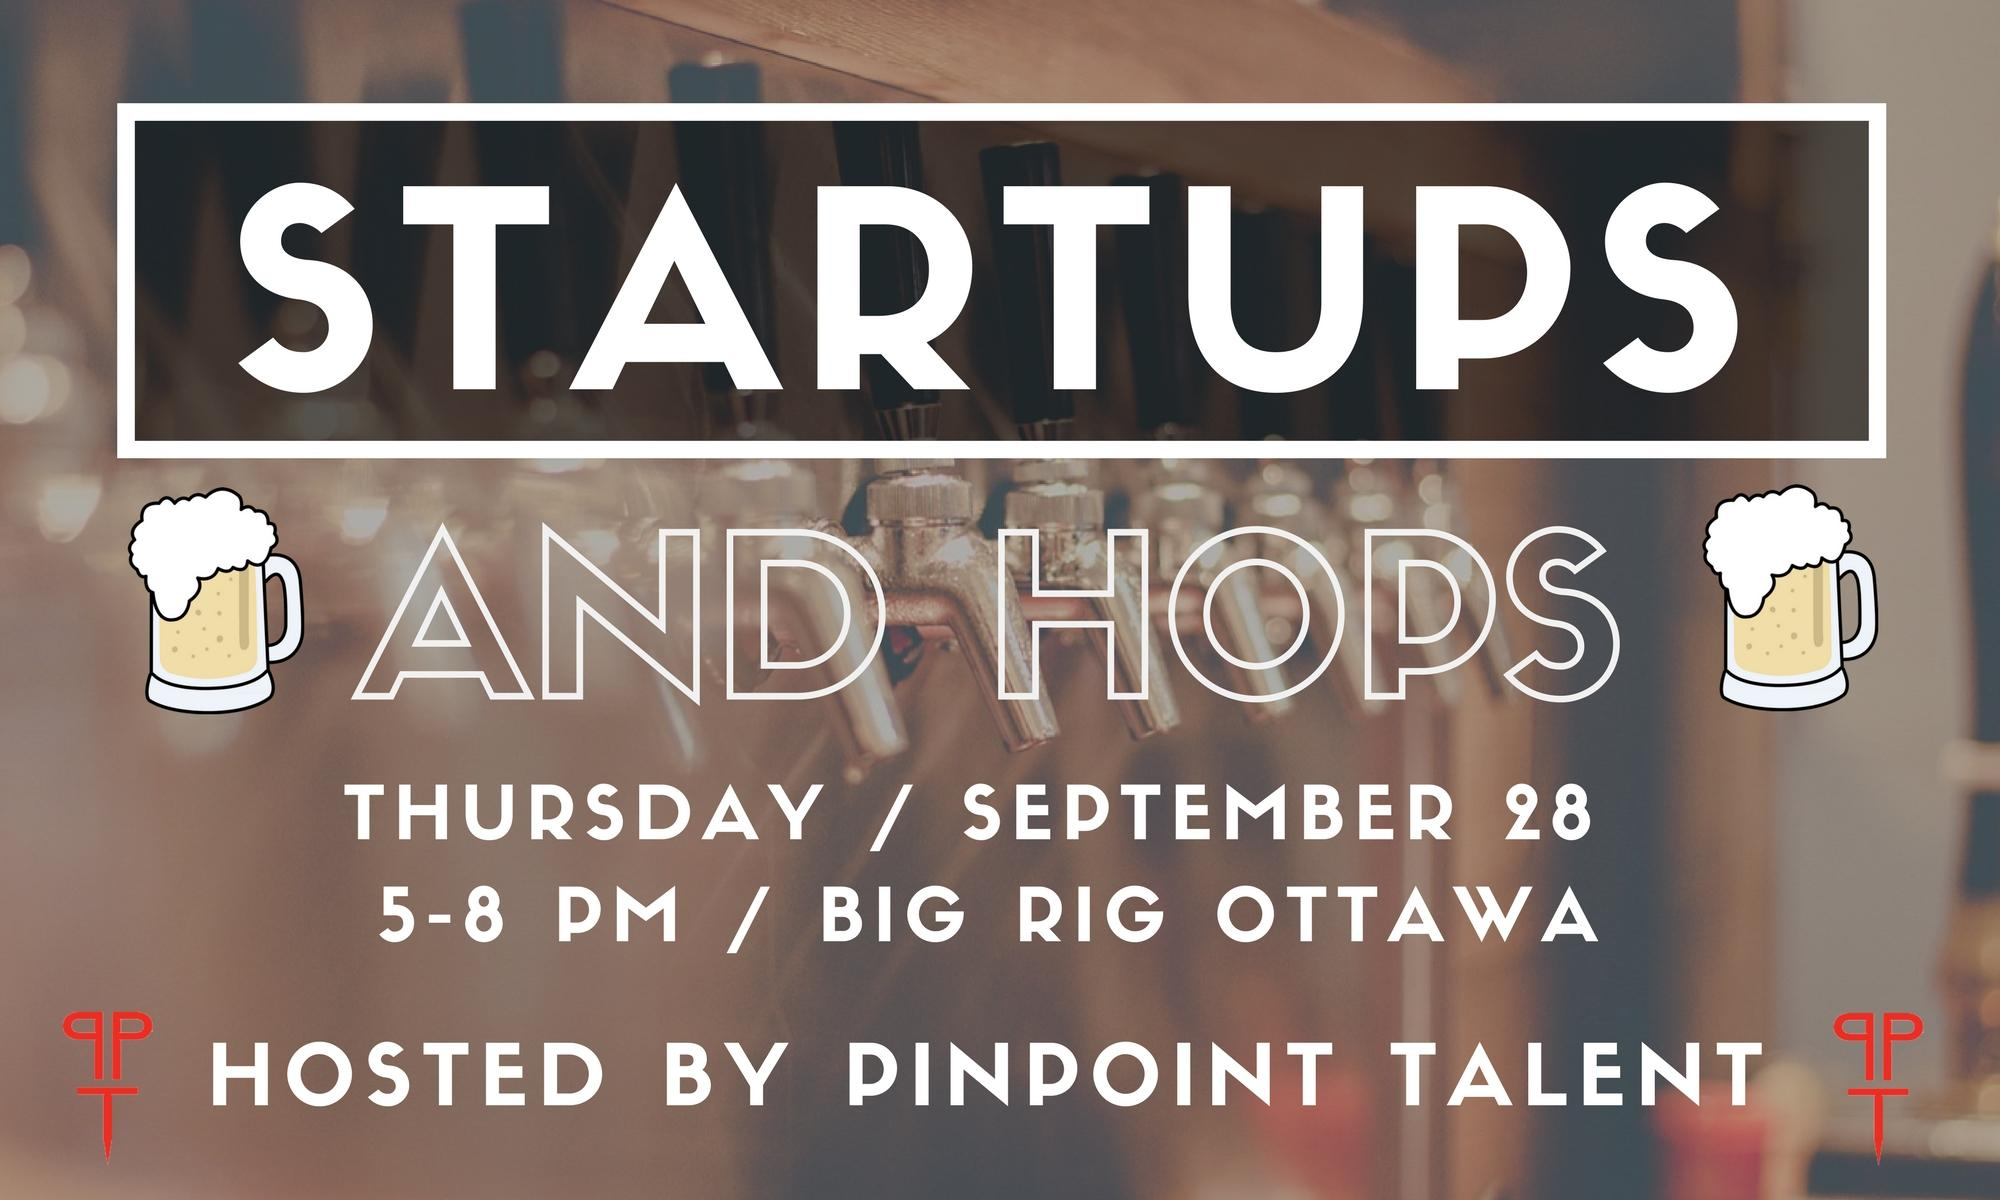 startup and hops big rig kitchen and brewery ottawa 28 sep 2017